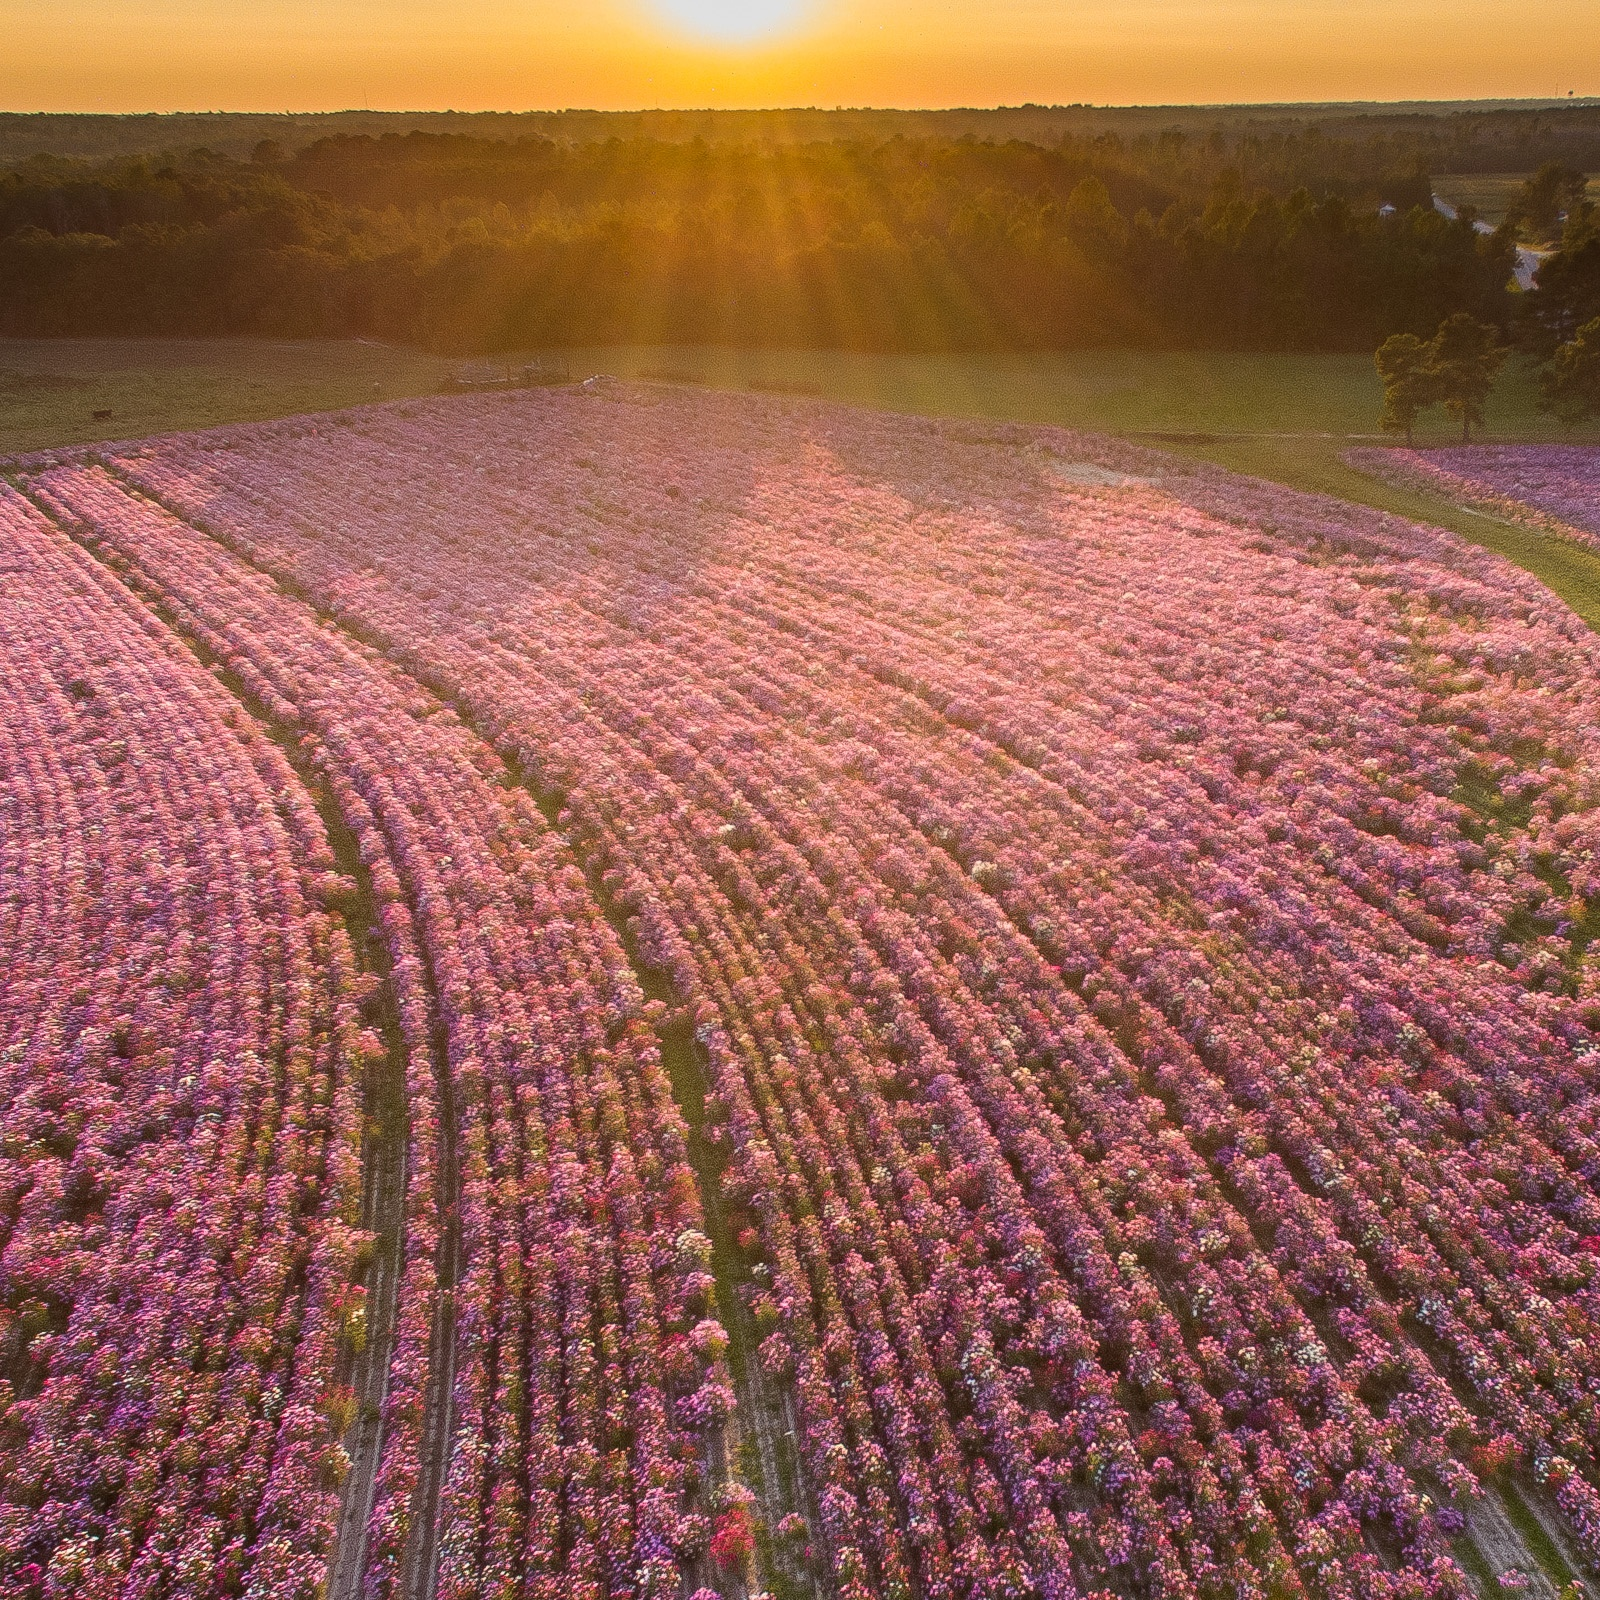 Cosmos planted rows